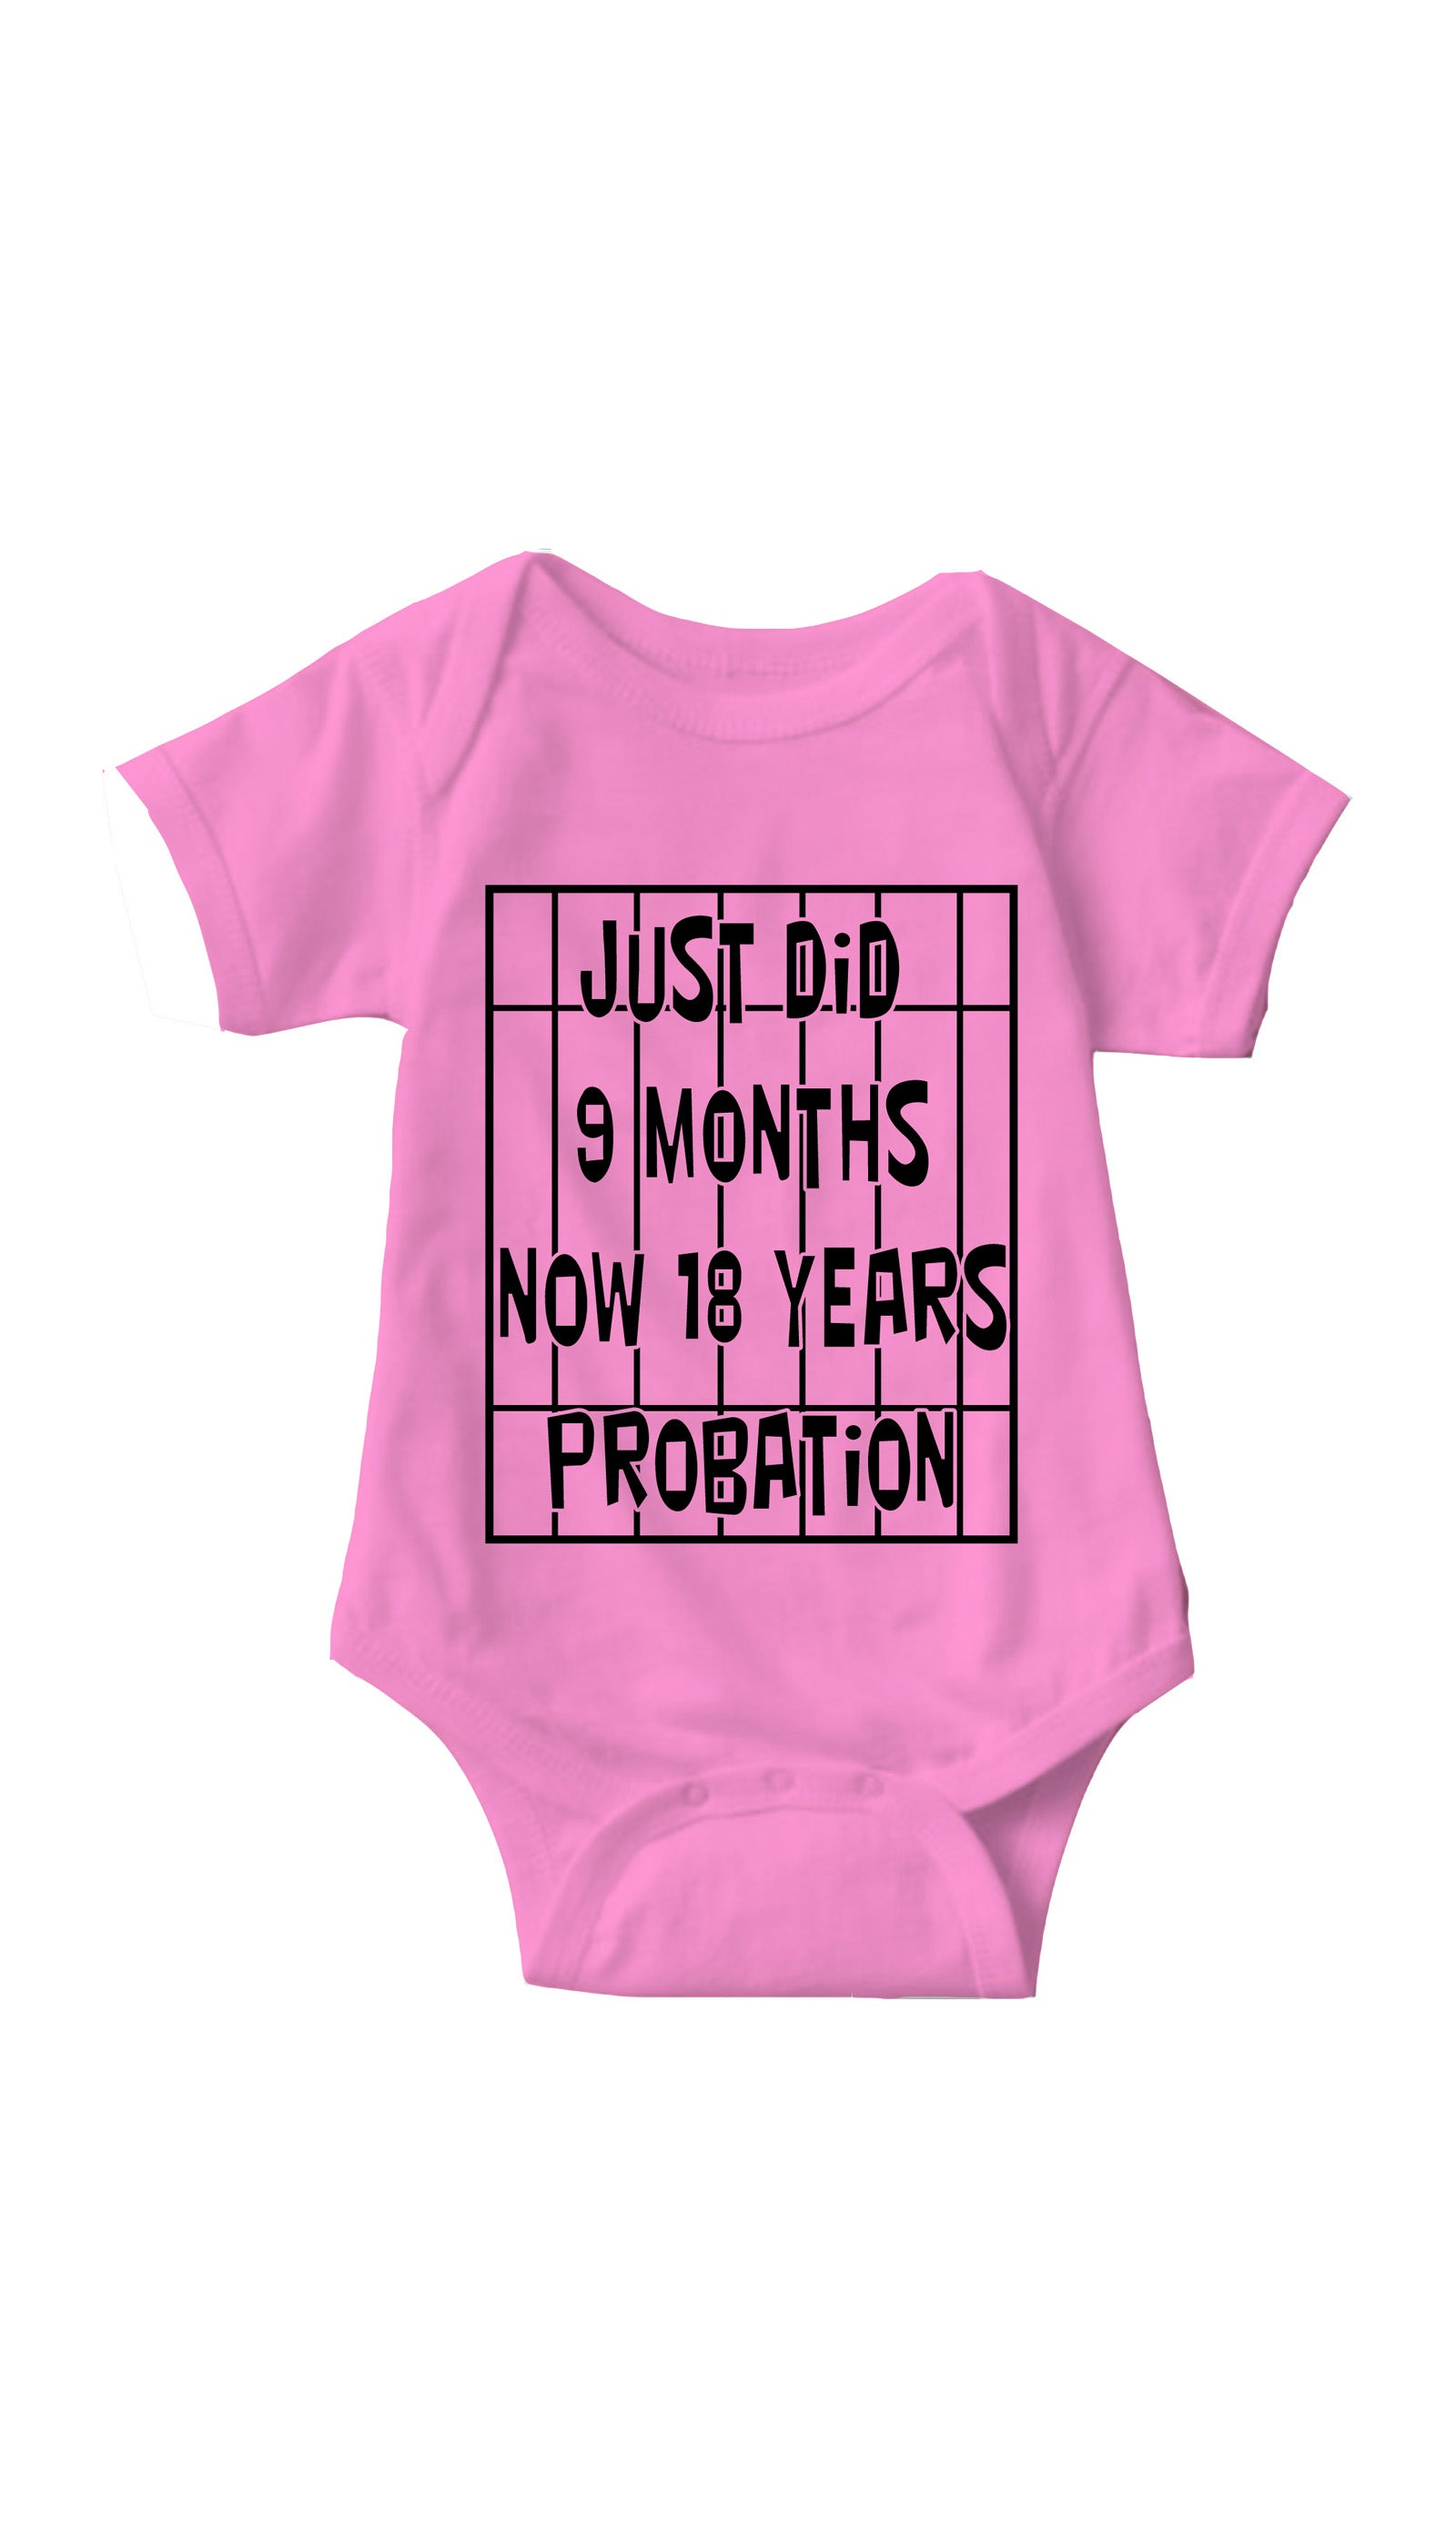 Just Did 9 Months Now 18 Years Probation Pink Infant Onesie | Sarcastic ME